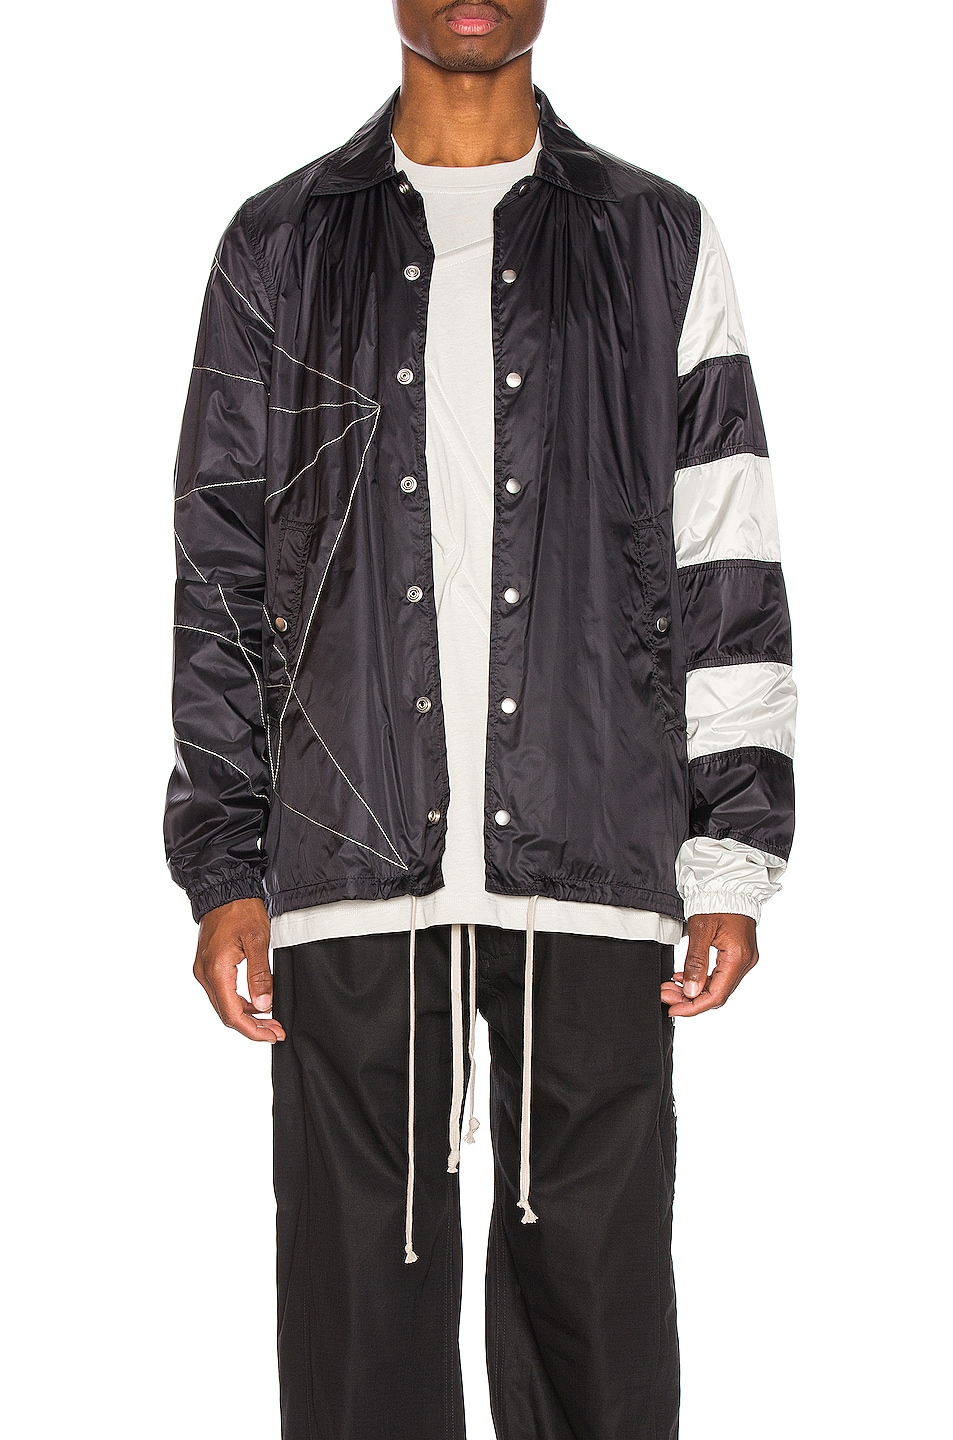 Image 1 of Rick Owens Snapfront Jacket in Black, Oyster & Pearl